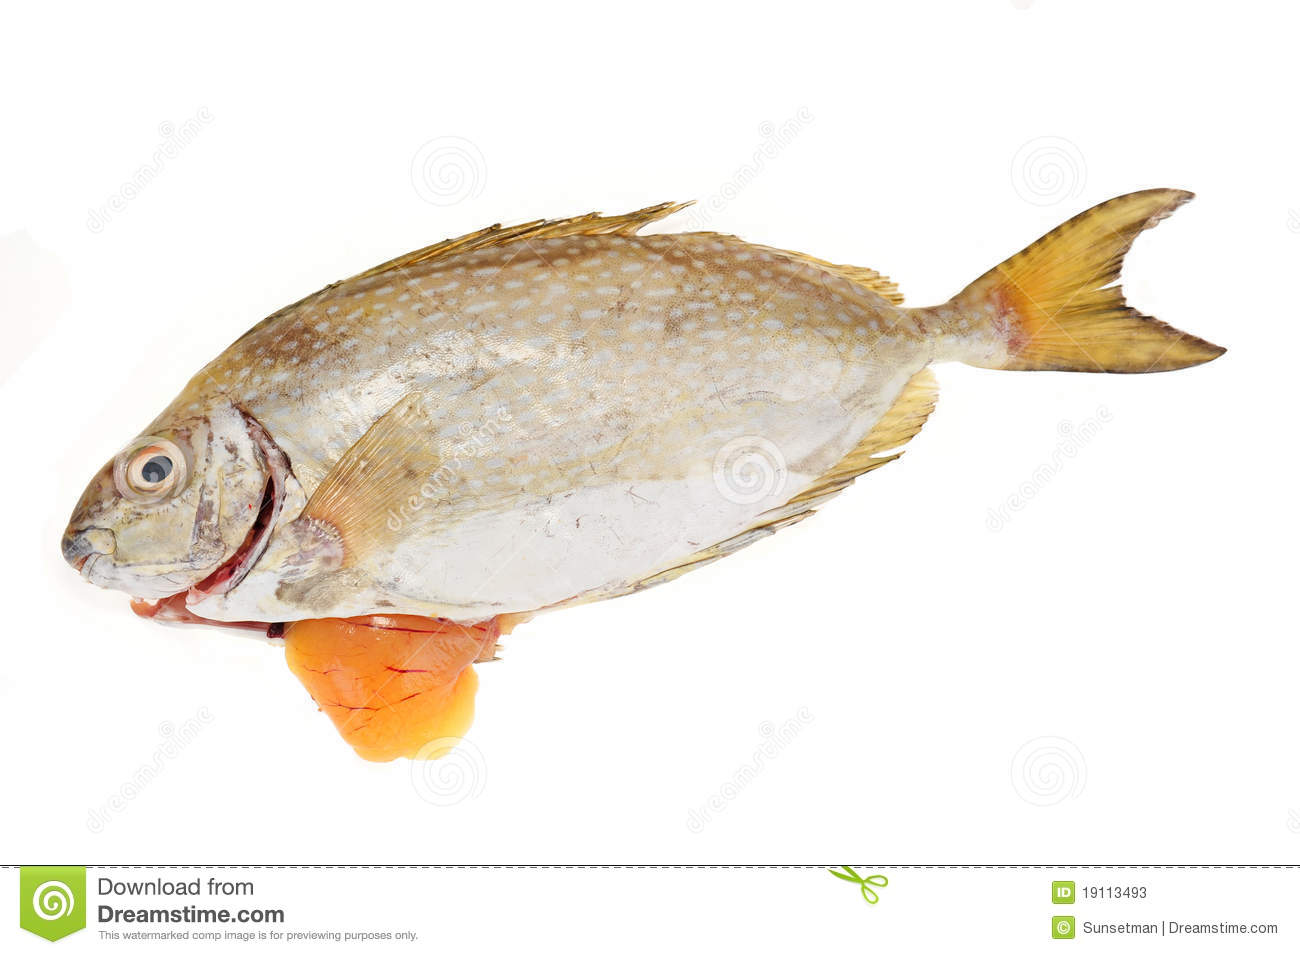 Rabbit Fish Laden With Roe. Image Is Isolated On White Background.: dreamstime.com/stock-photos-fish-roe-image19113493